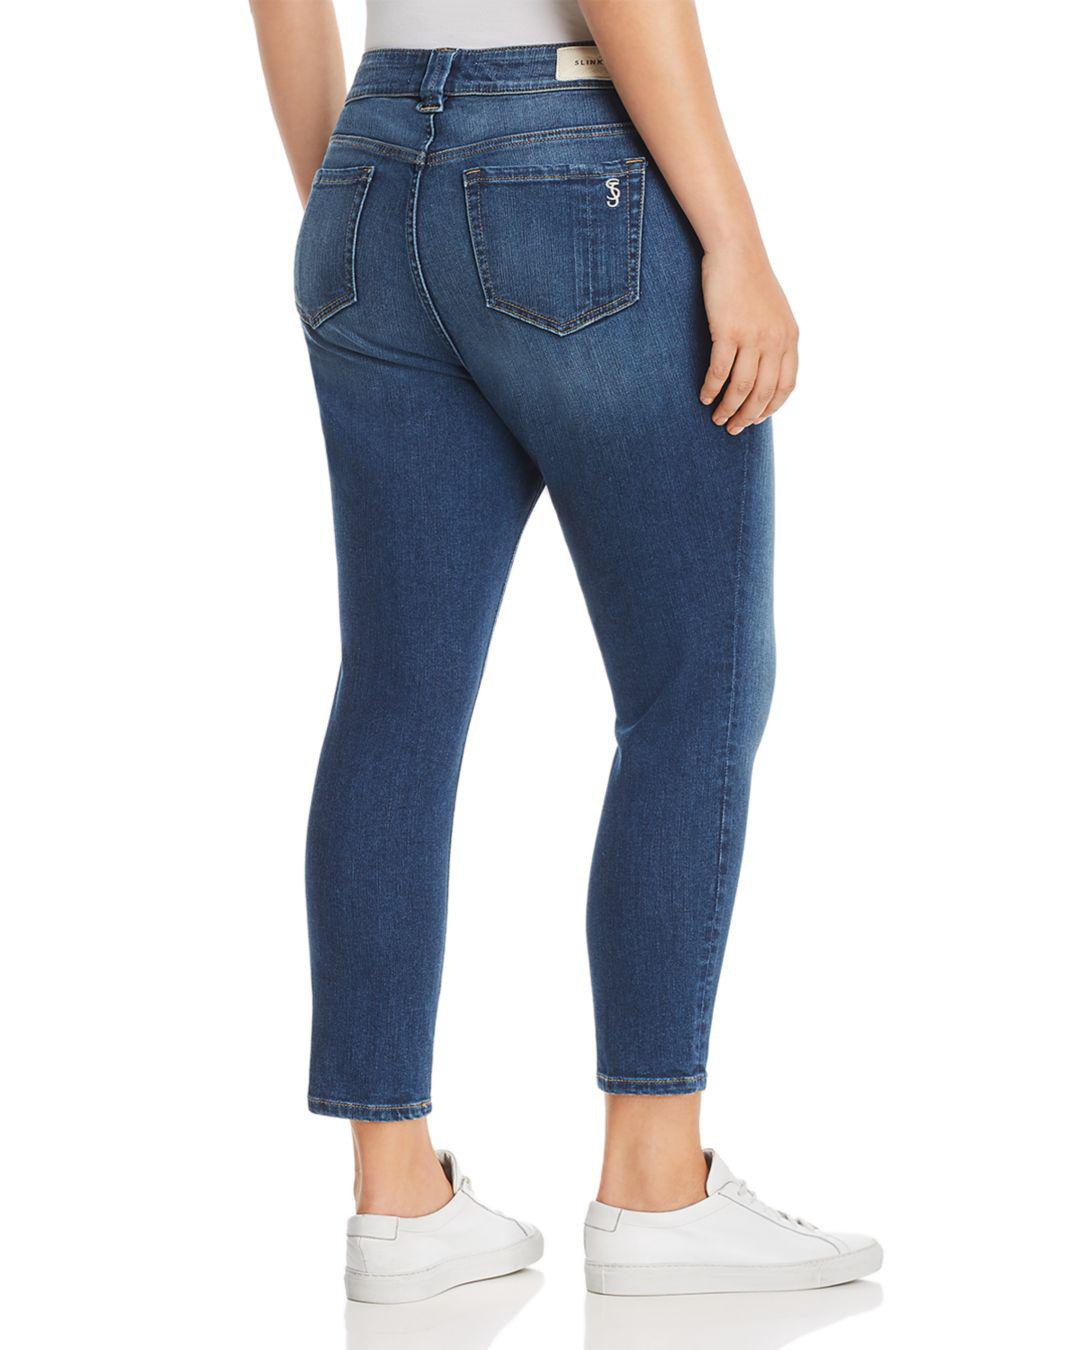 25ab7b10af3 Lyst - Slink Jeans Plus Seamed Cropped Jeans In Francis in Blue